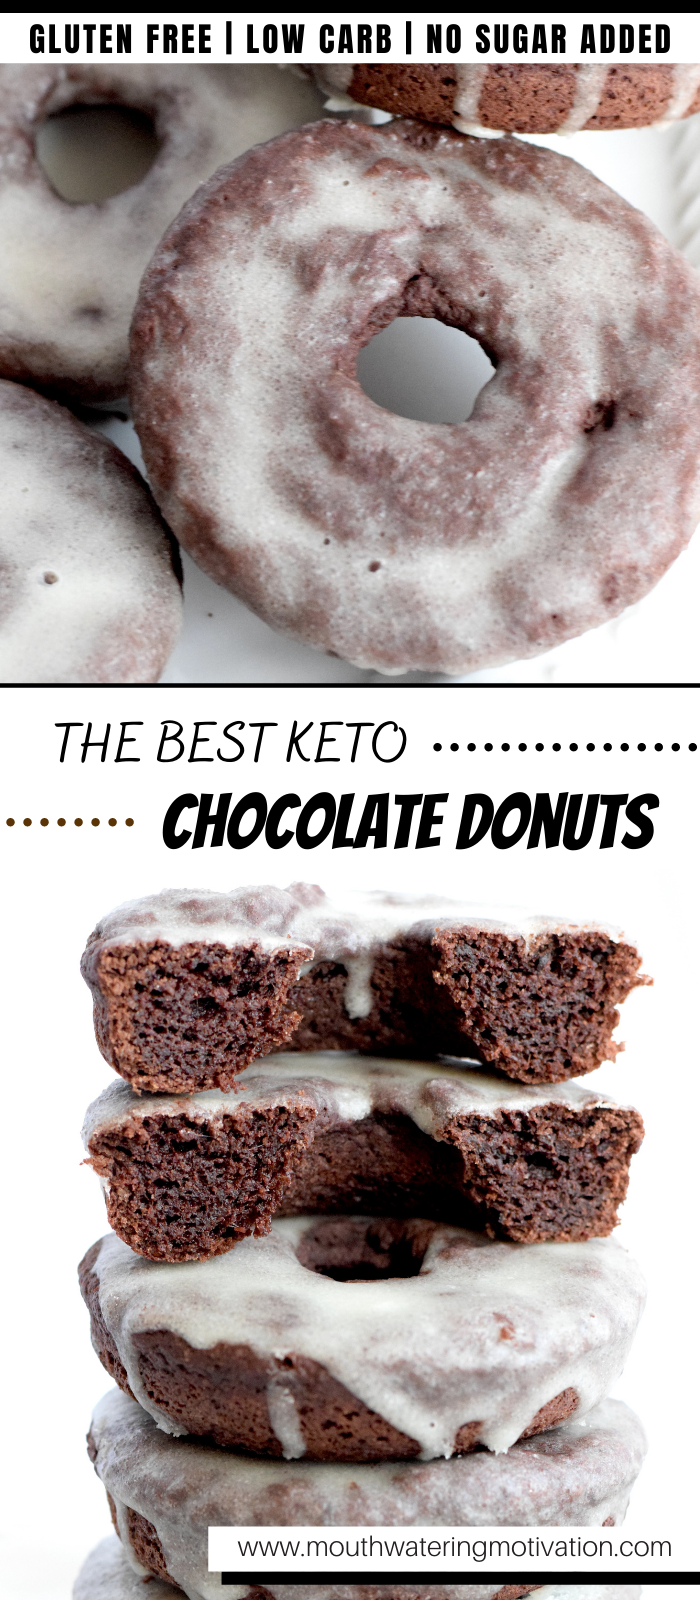 the best keto chocolate donuts